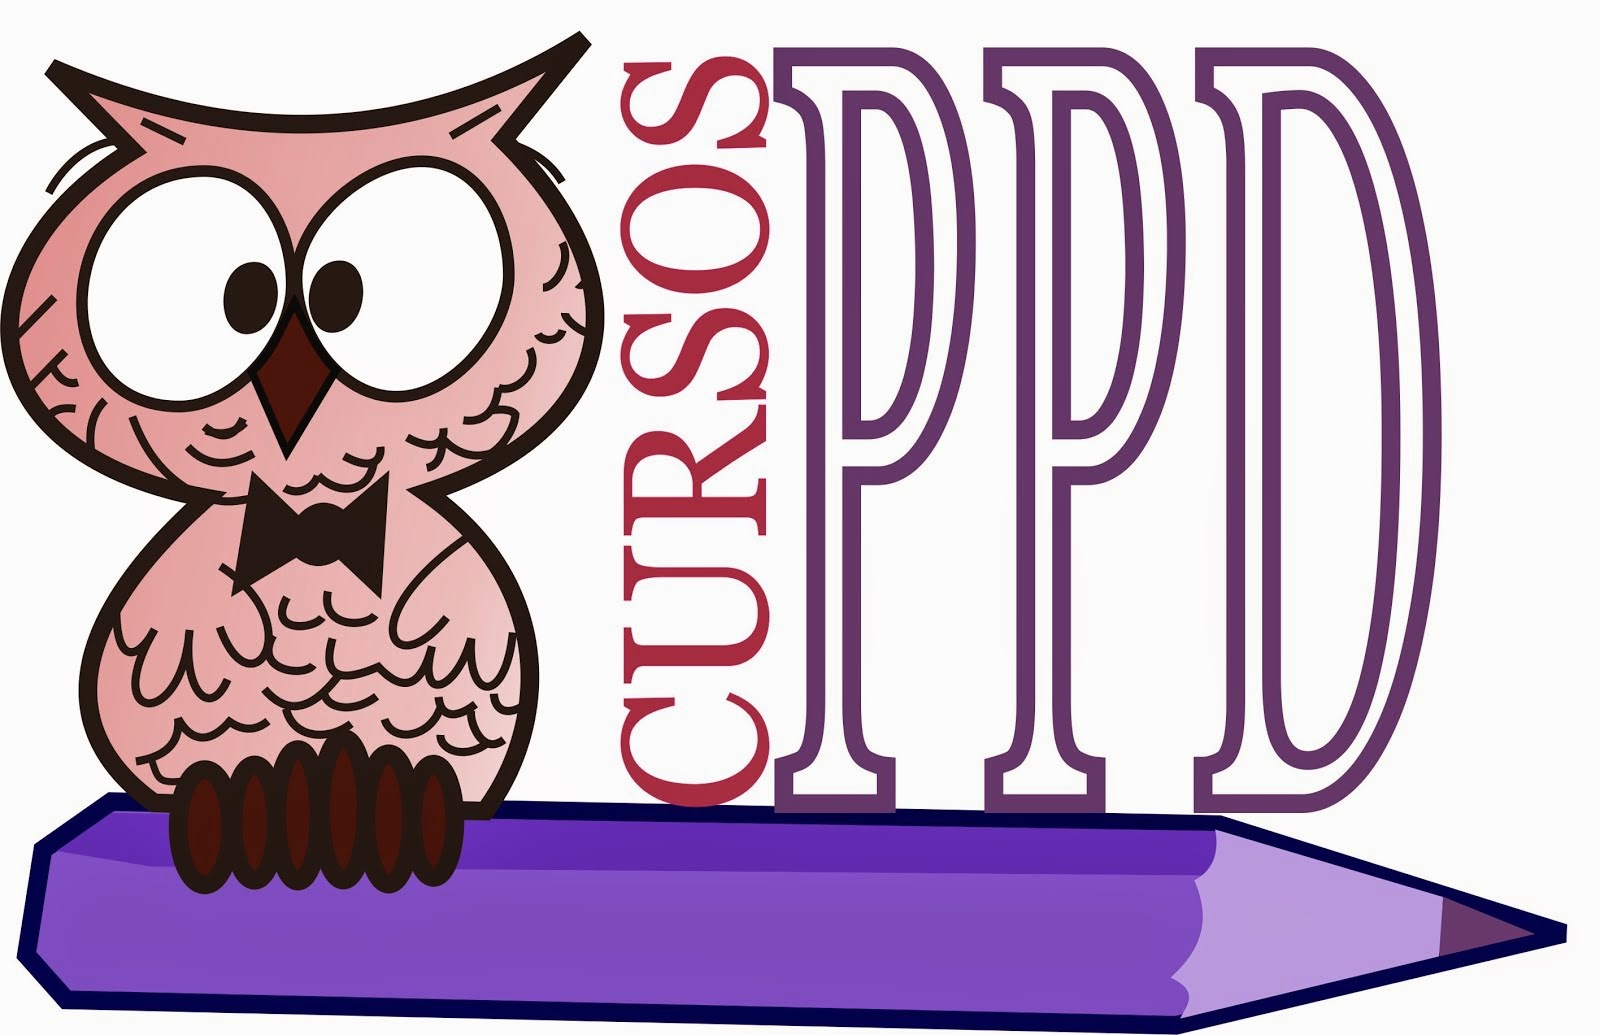 CURSOS PPD